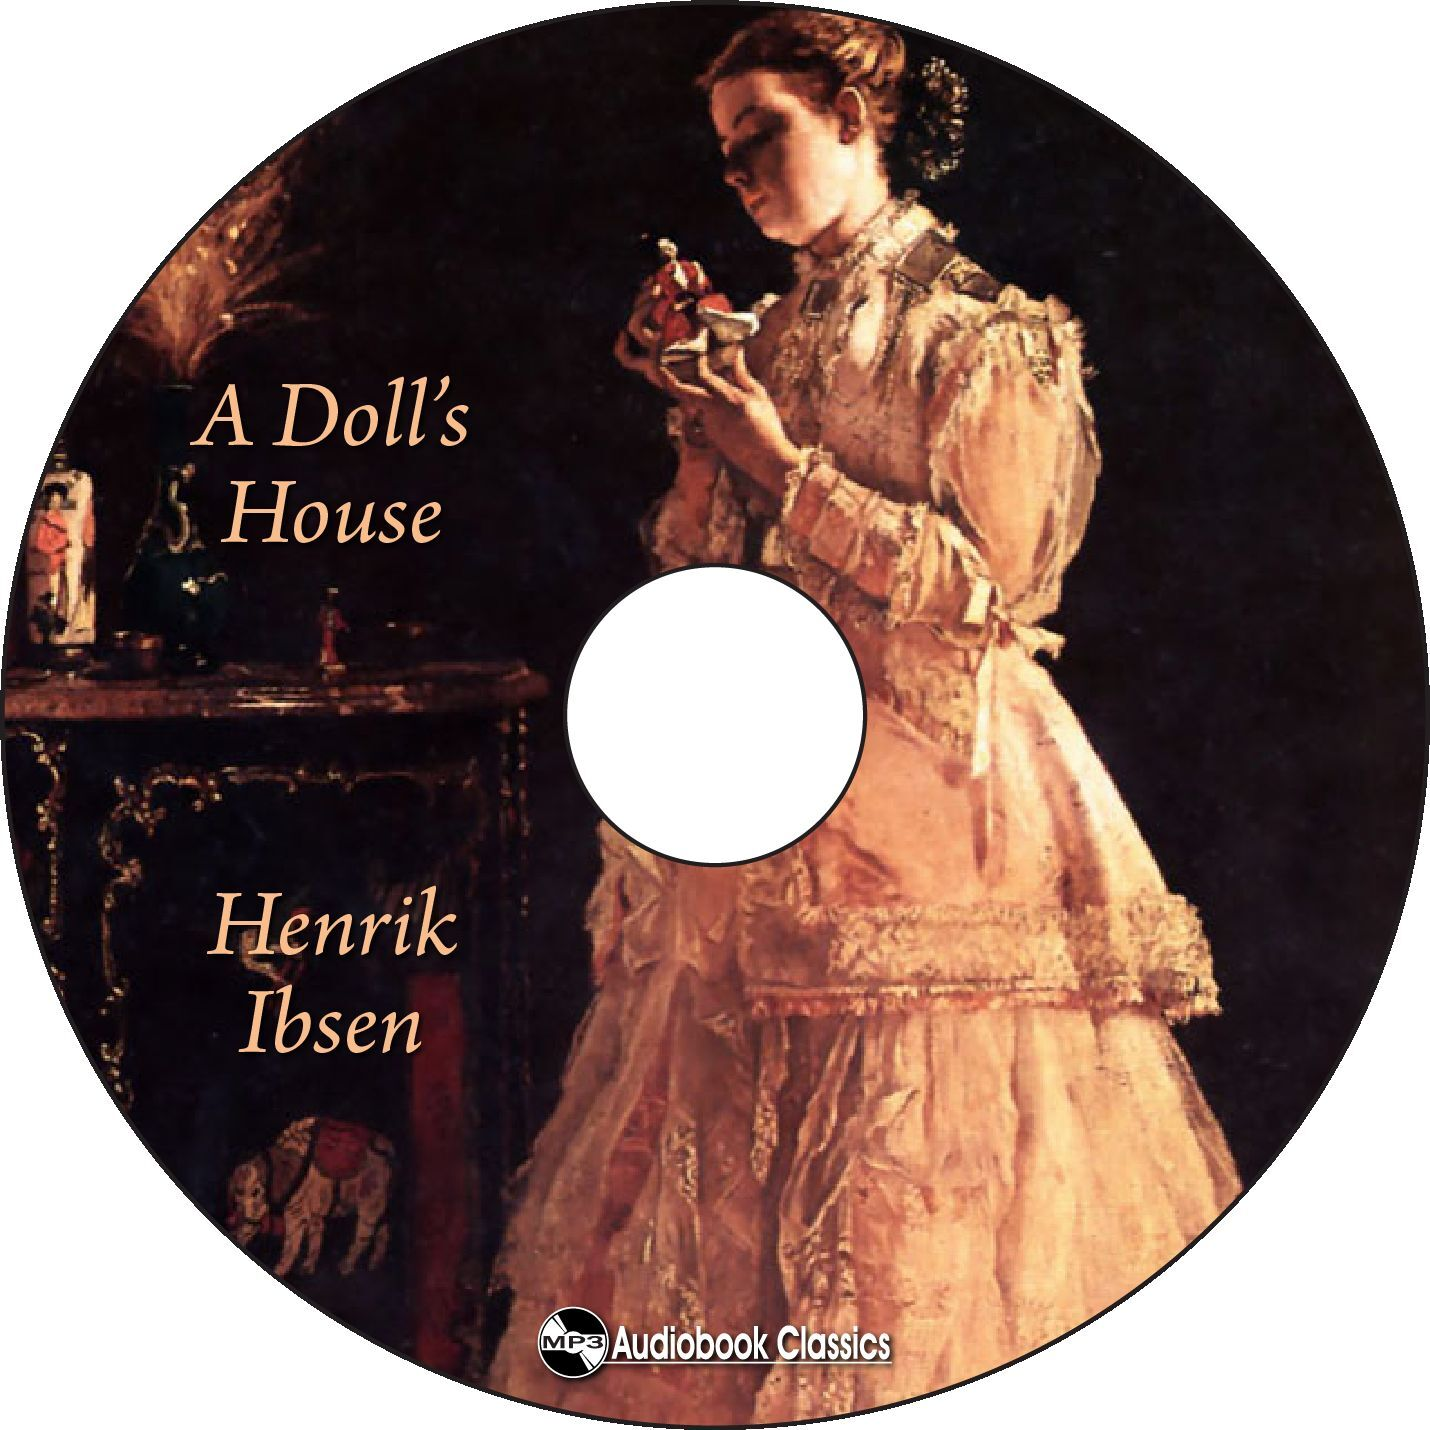 an analysis of the novel a dolls house by henrik ibsen A doll's house, this is a free study guide to a dolls house written by henrik ibsen when this play was first performed in copenhagen, denmark in 1879, it provoked a.